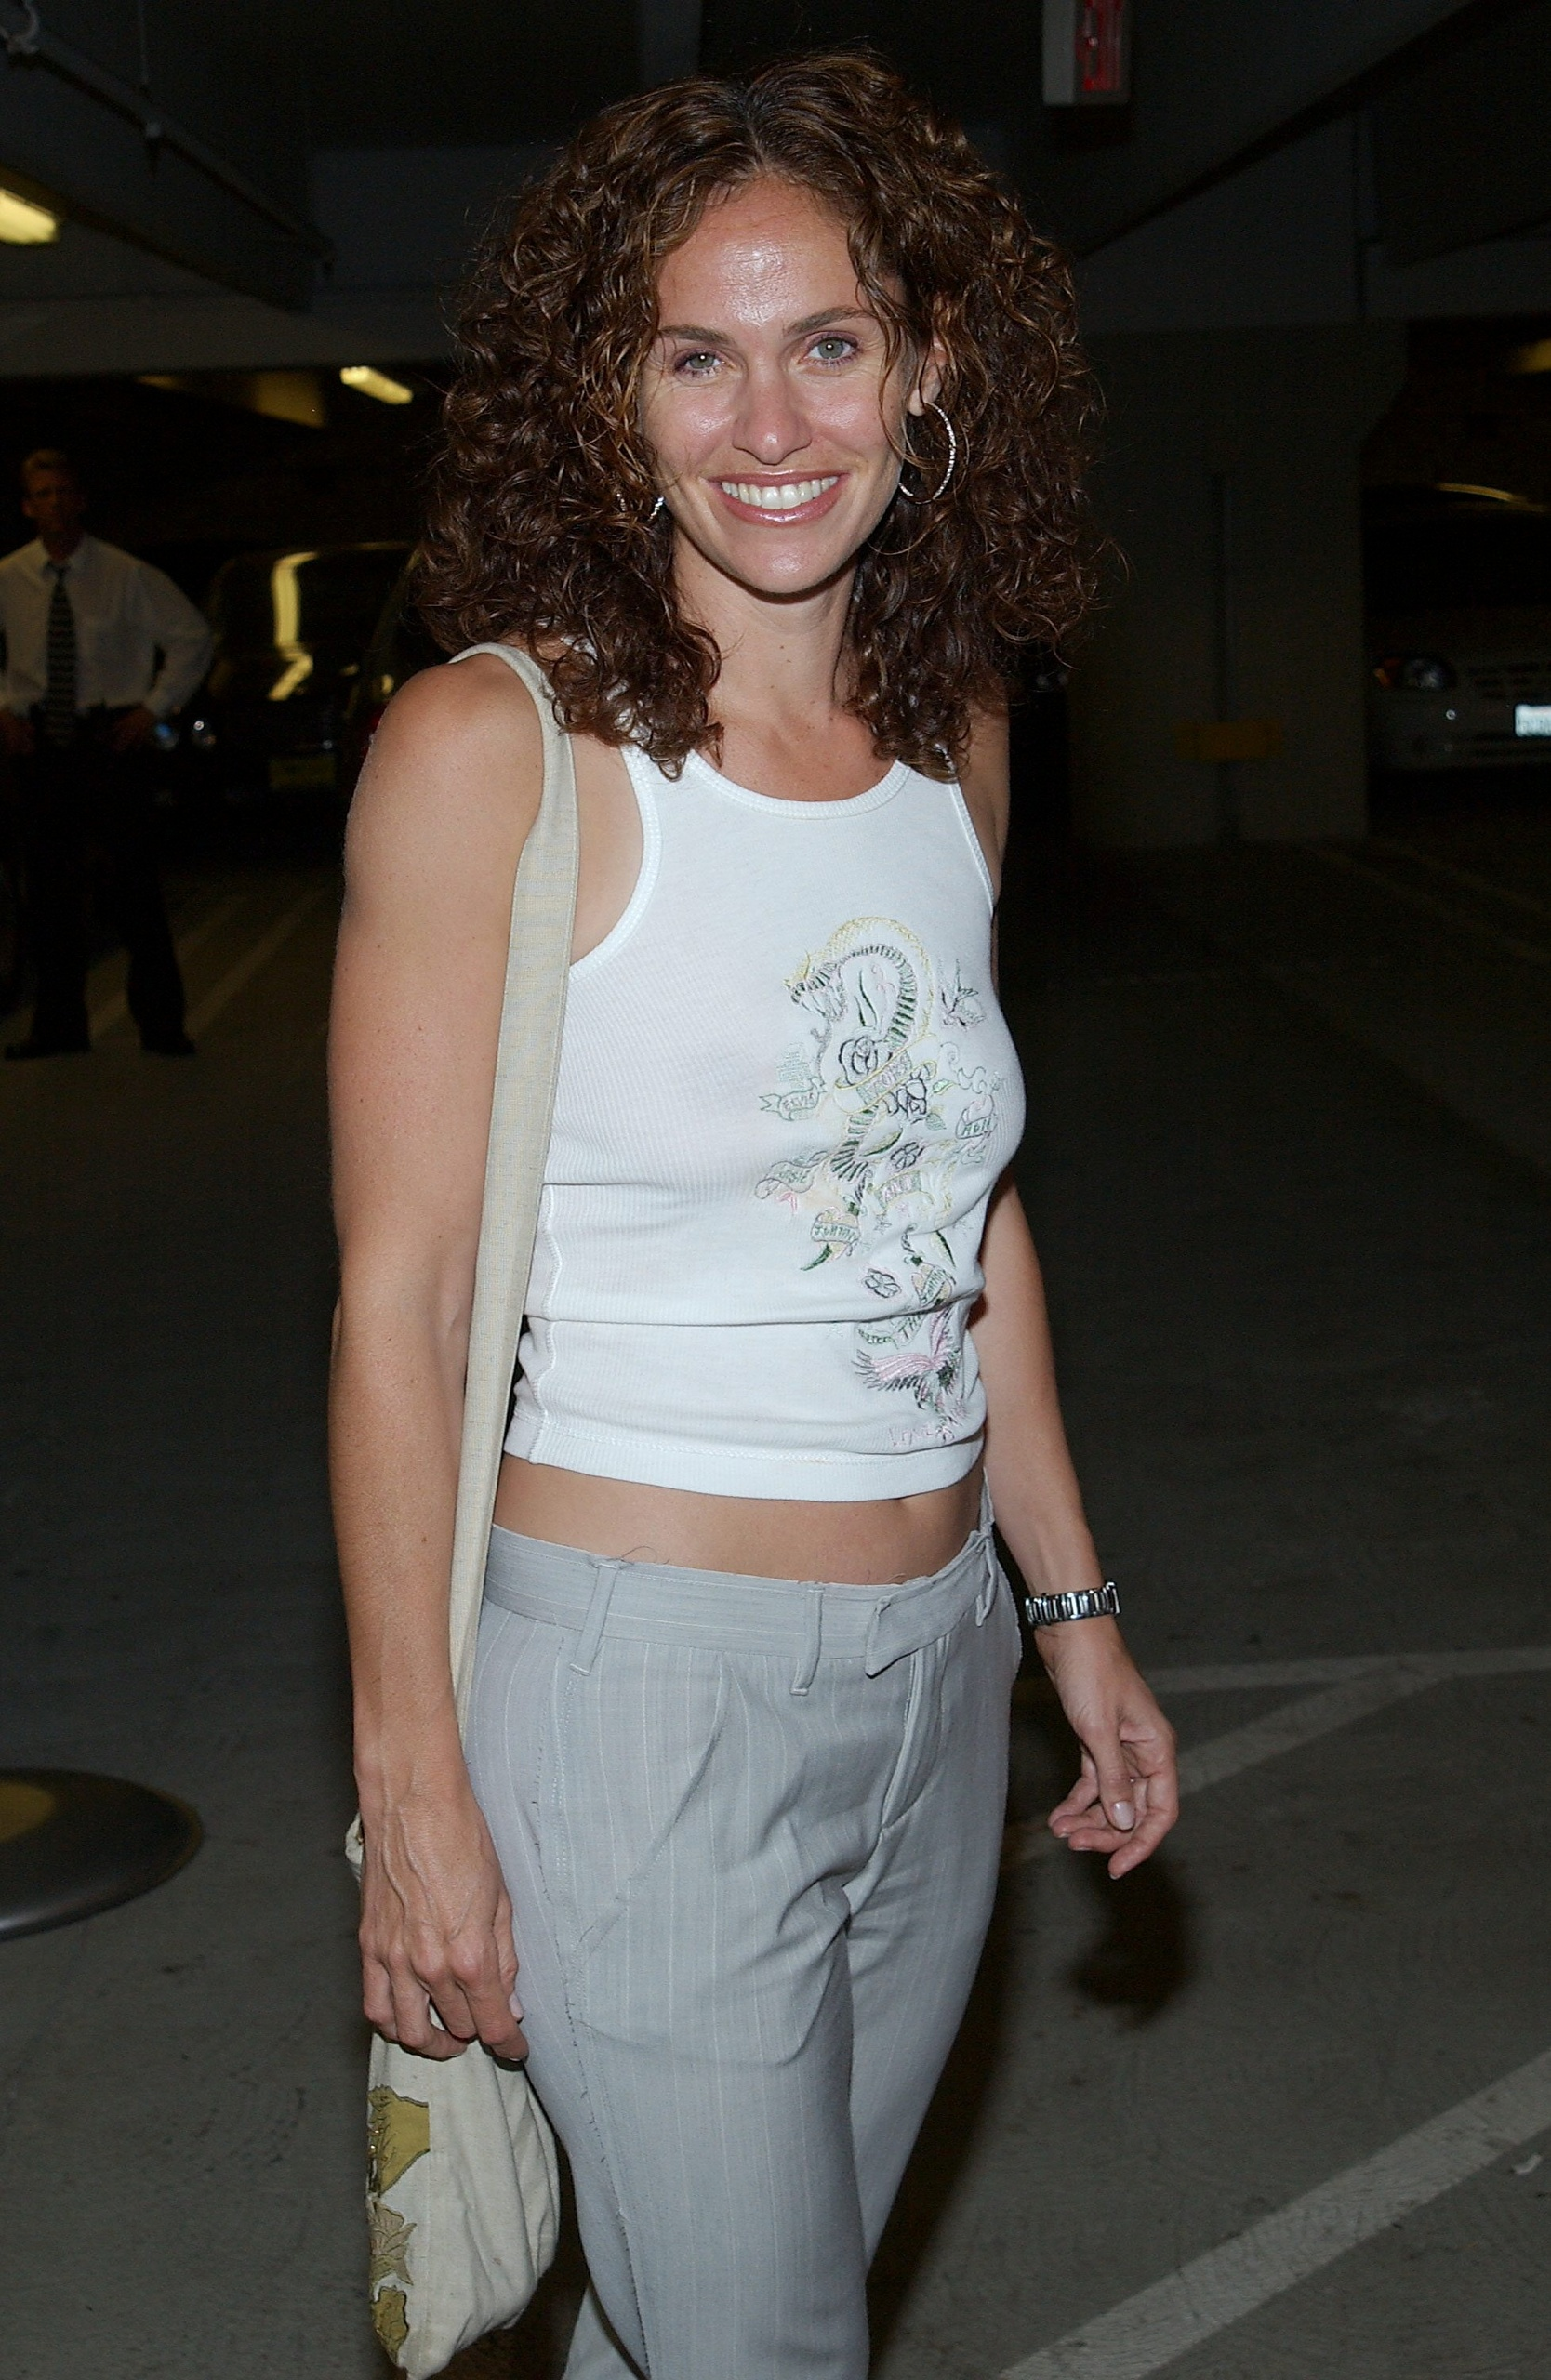 100 Images of Amy Brenneman Hot